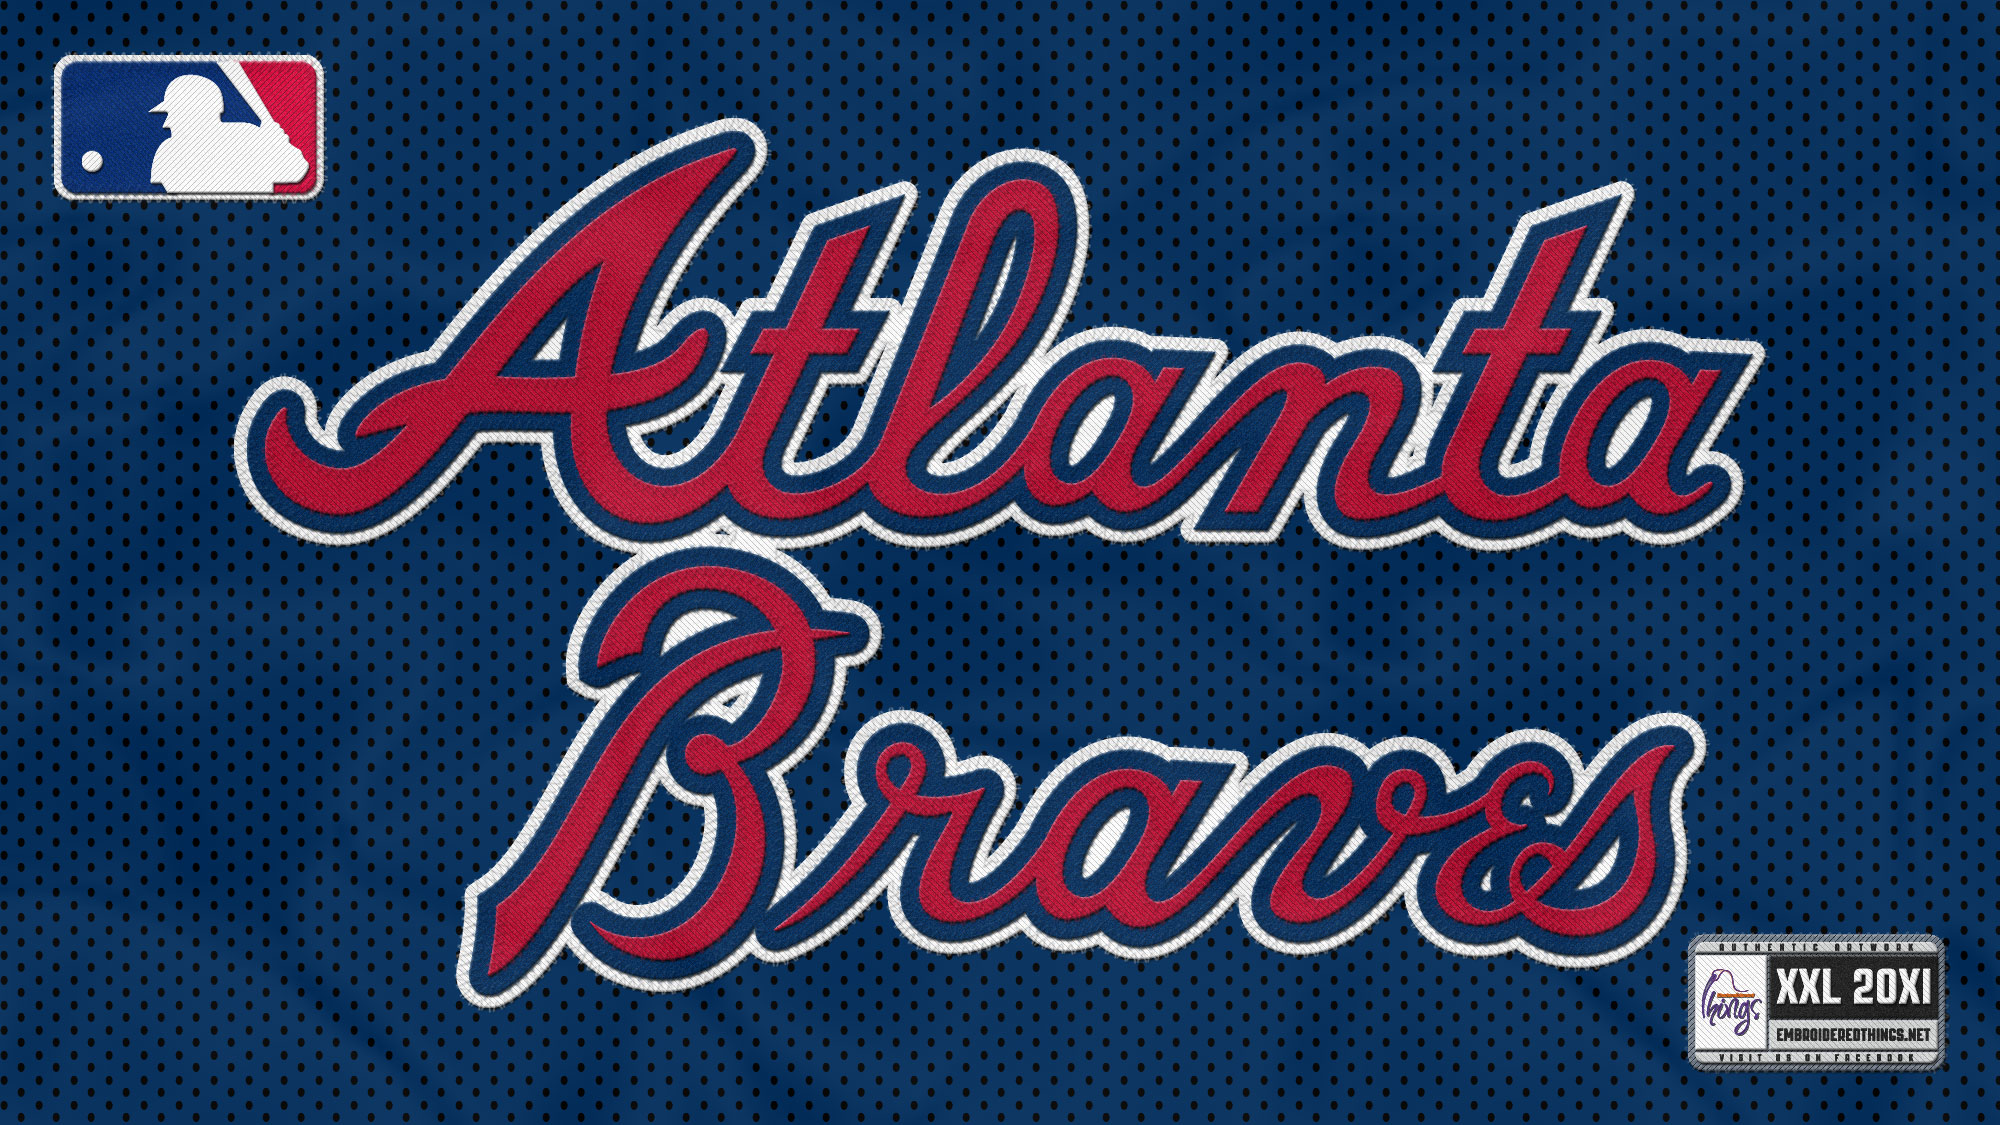 Atlanta Braves Team Wallpaper Images Crazy Gallery 2000x1125